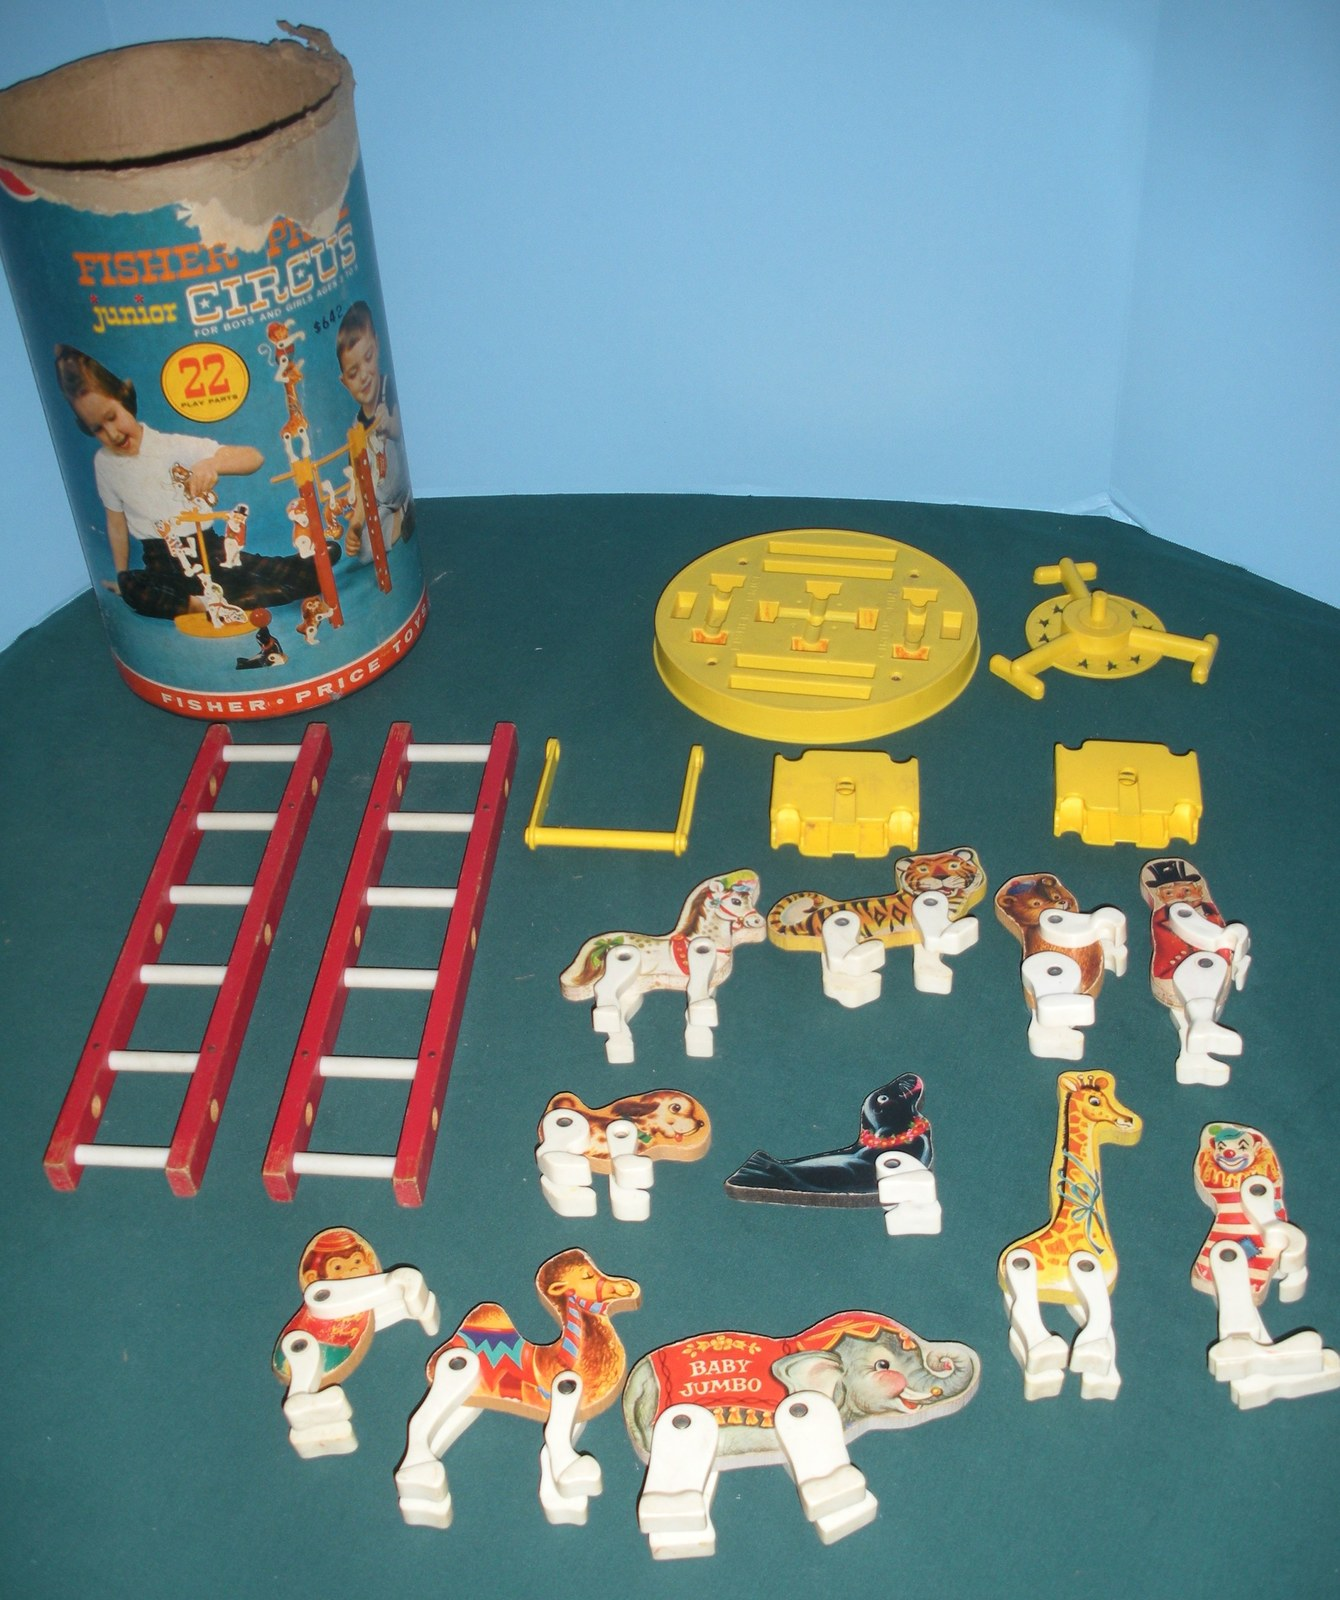 Vintage Fisher Price #902 Junior Circus Loaded/VG-VG++ (B)